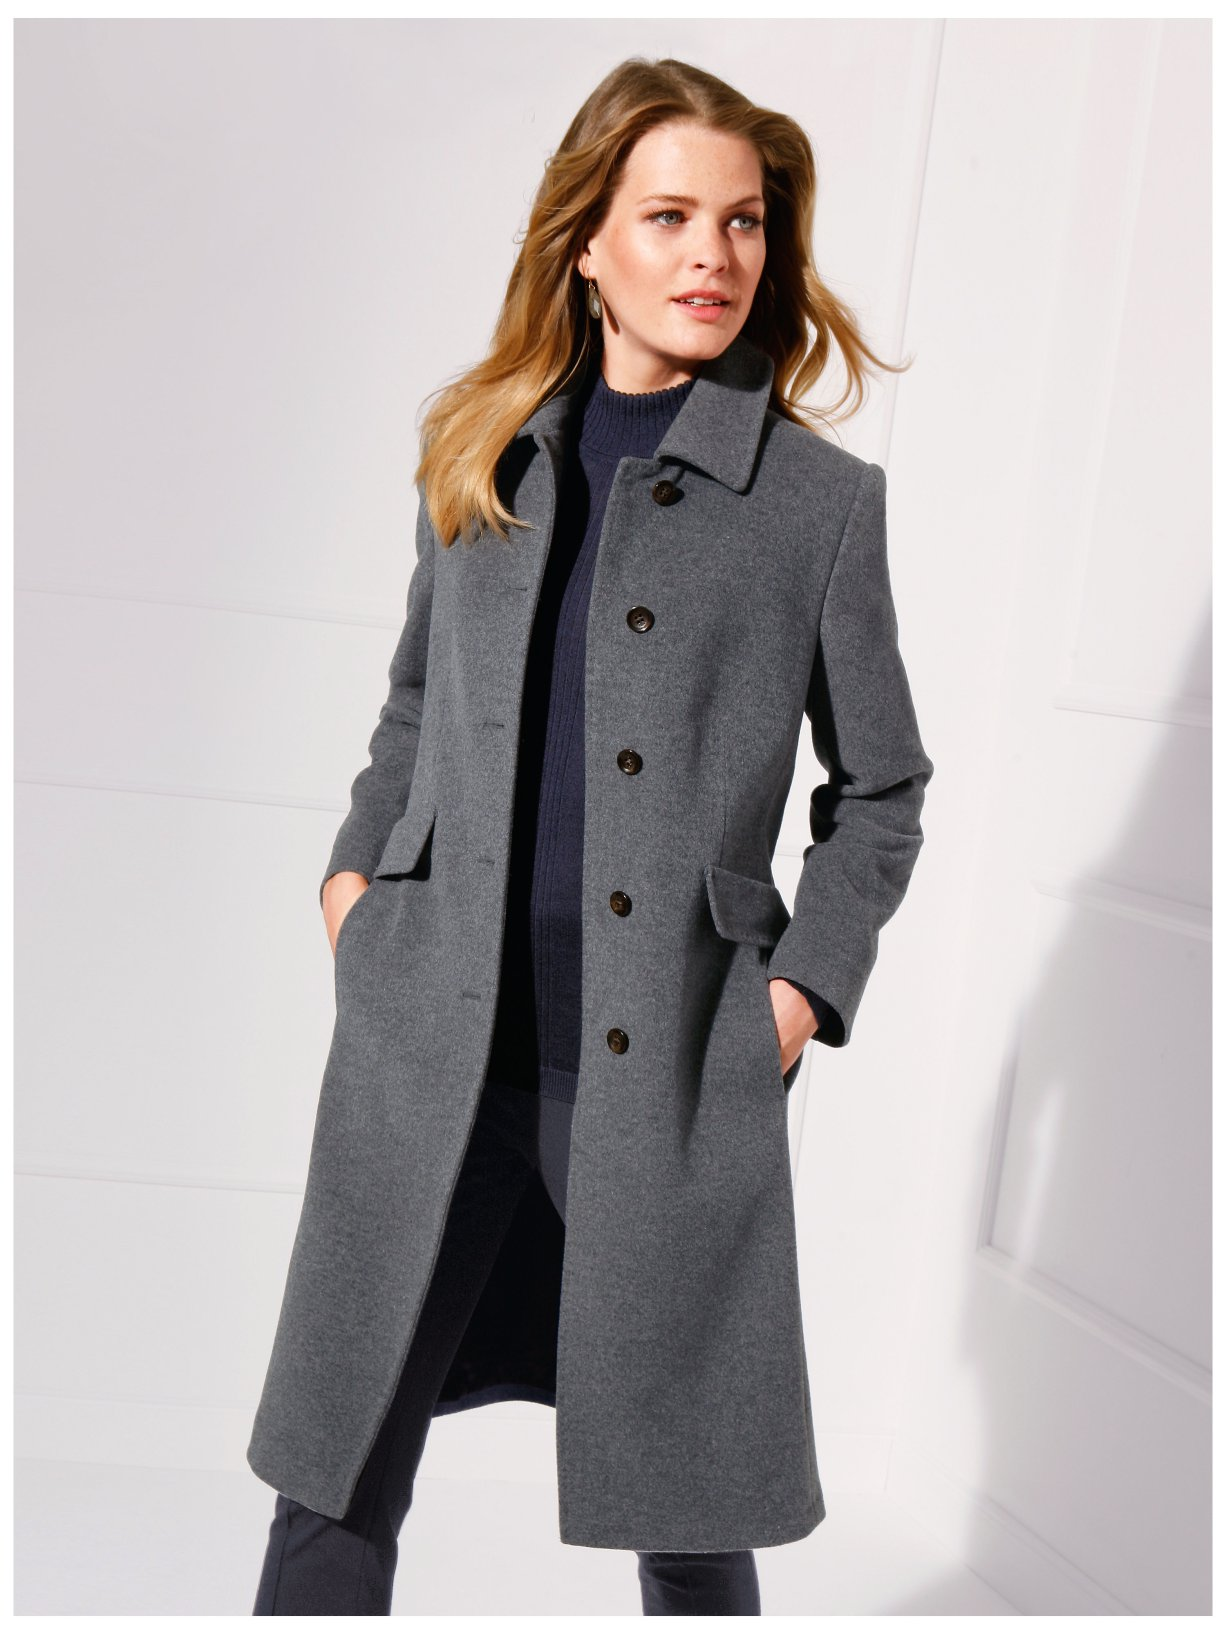 Find great deals on eBay for manteau hiver femme. Shop with confidence.